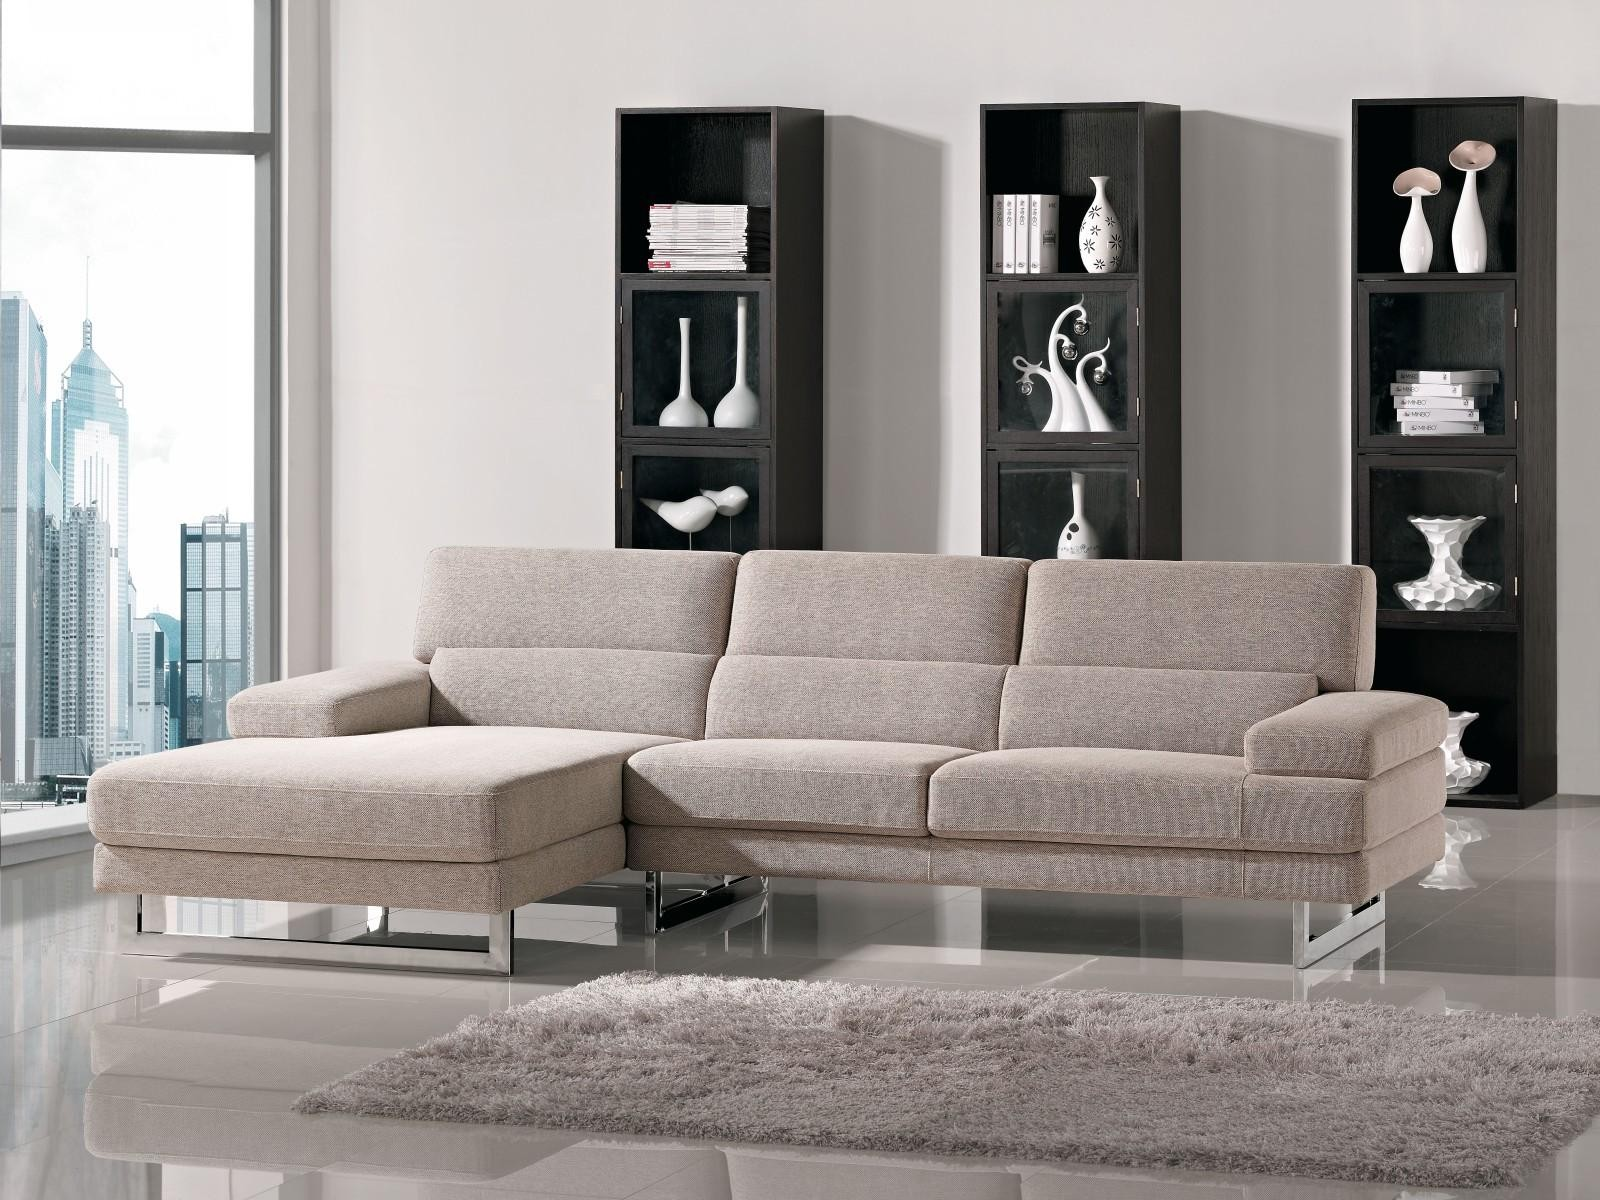 Best modern furniture stores in massachusetts - Beige L Shape Fabric Sectional Sofa